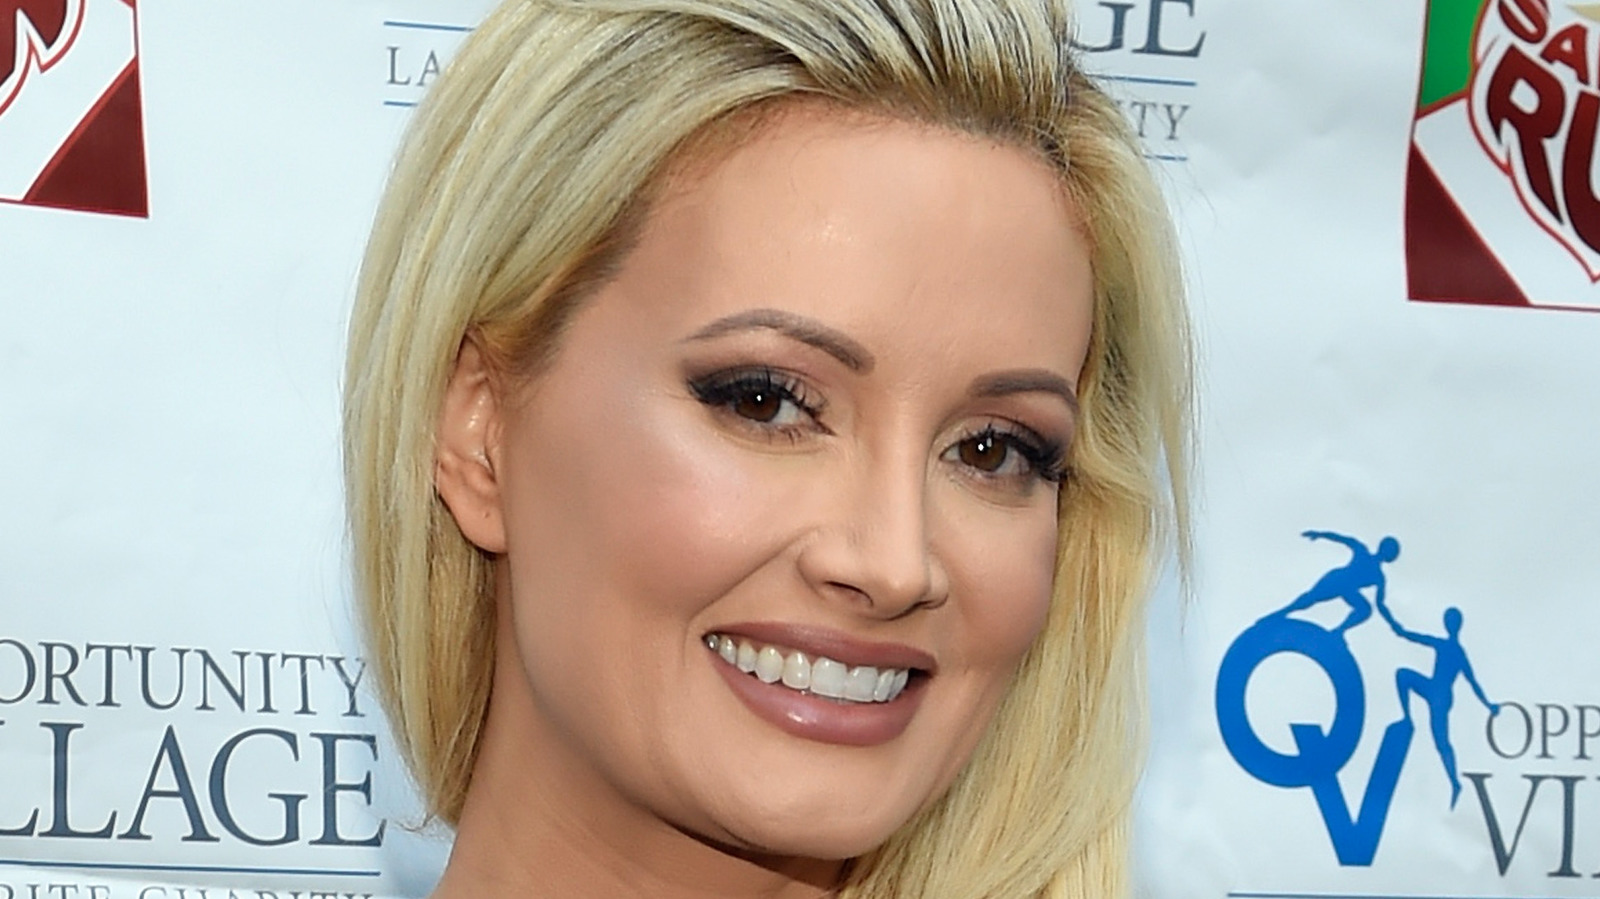 Whatever Happened To Holly Madison From The Girls Next Door?.jpg